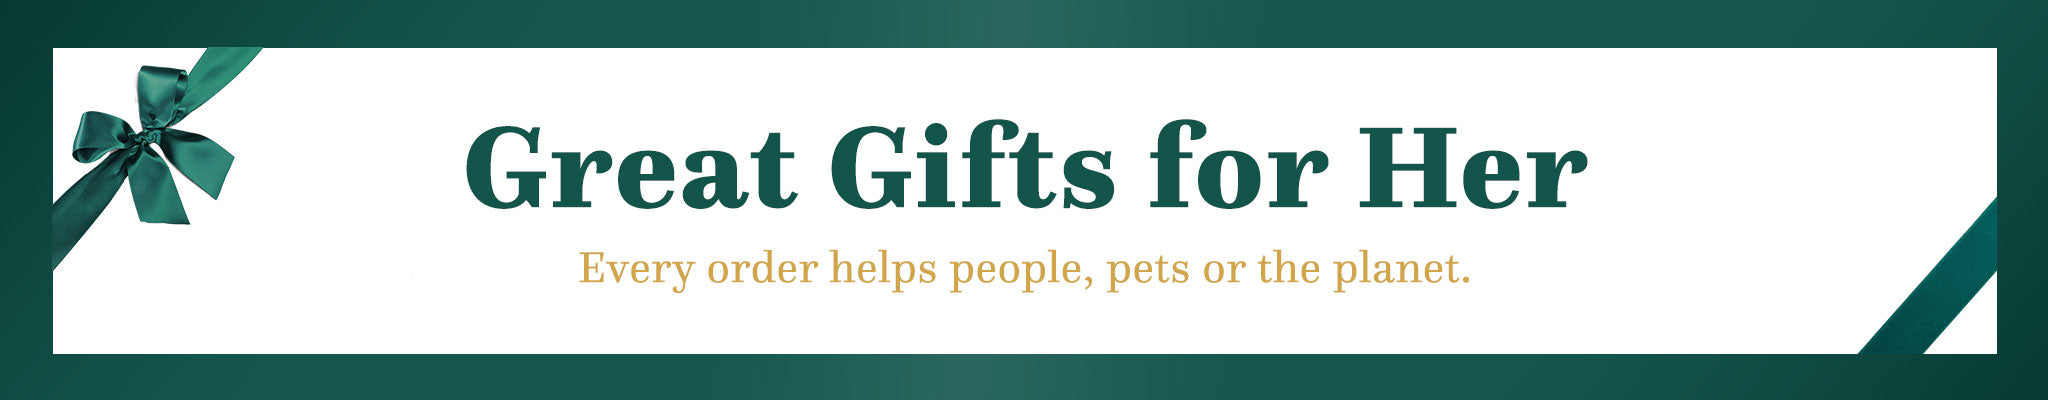 Great Gifts for Her | Every order helps people, pets or the planet.